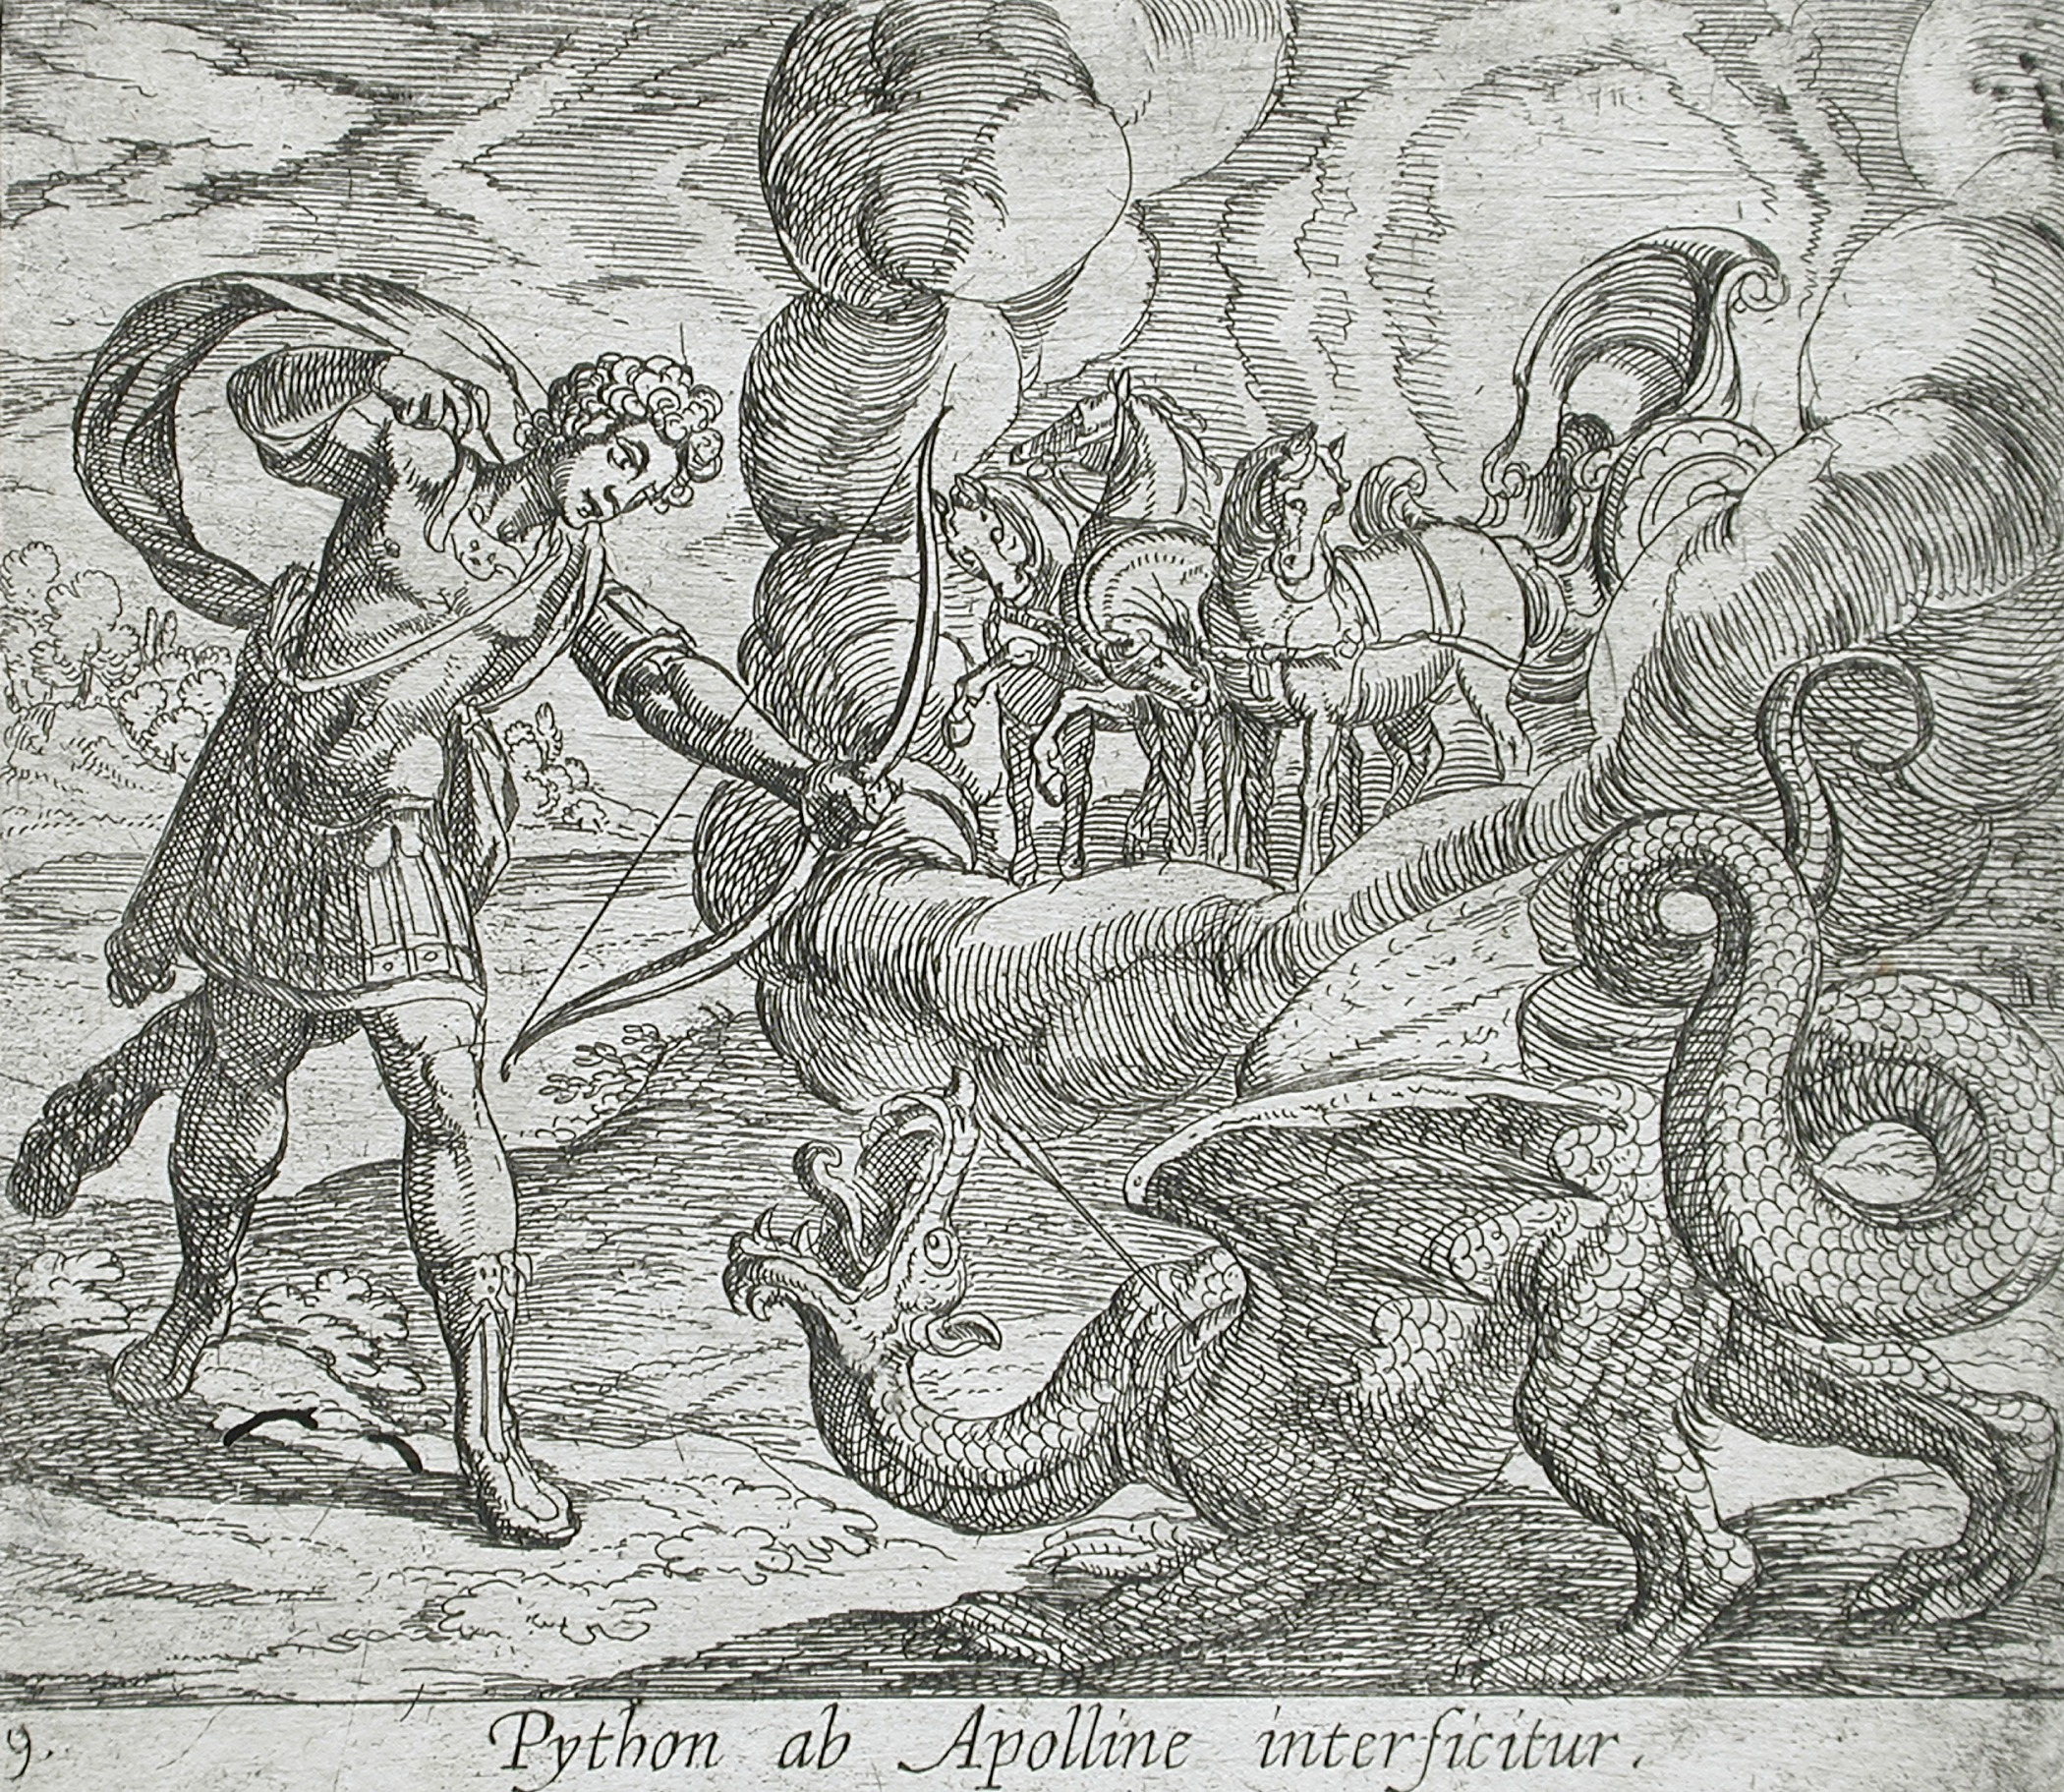 File:Apollo Killing Python LACMA 65 37 93 jpg - Wikimedia Commons